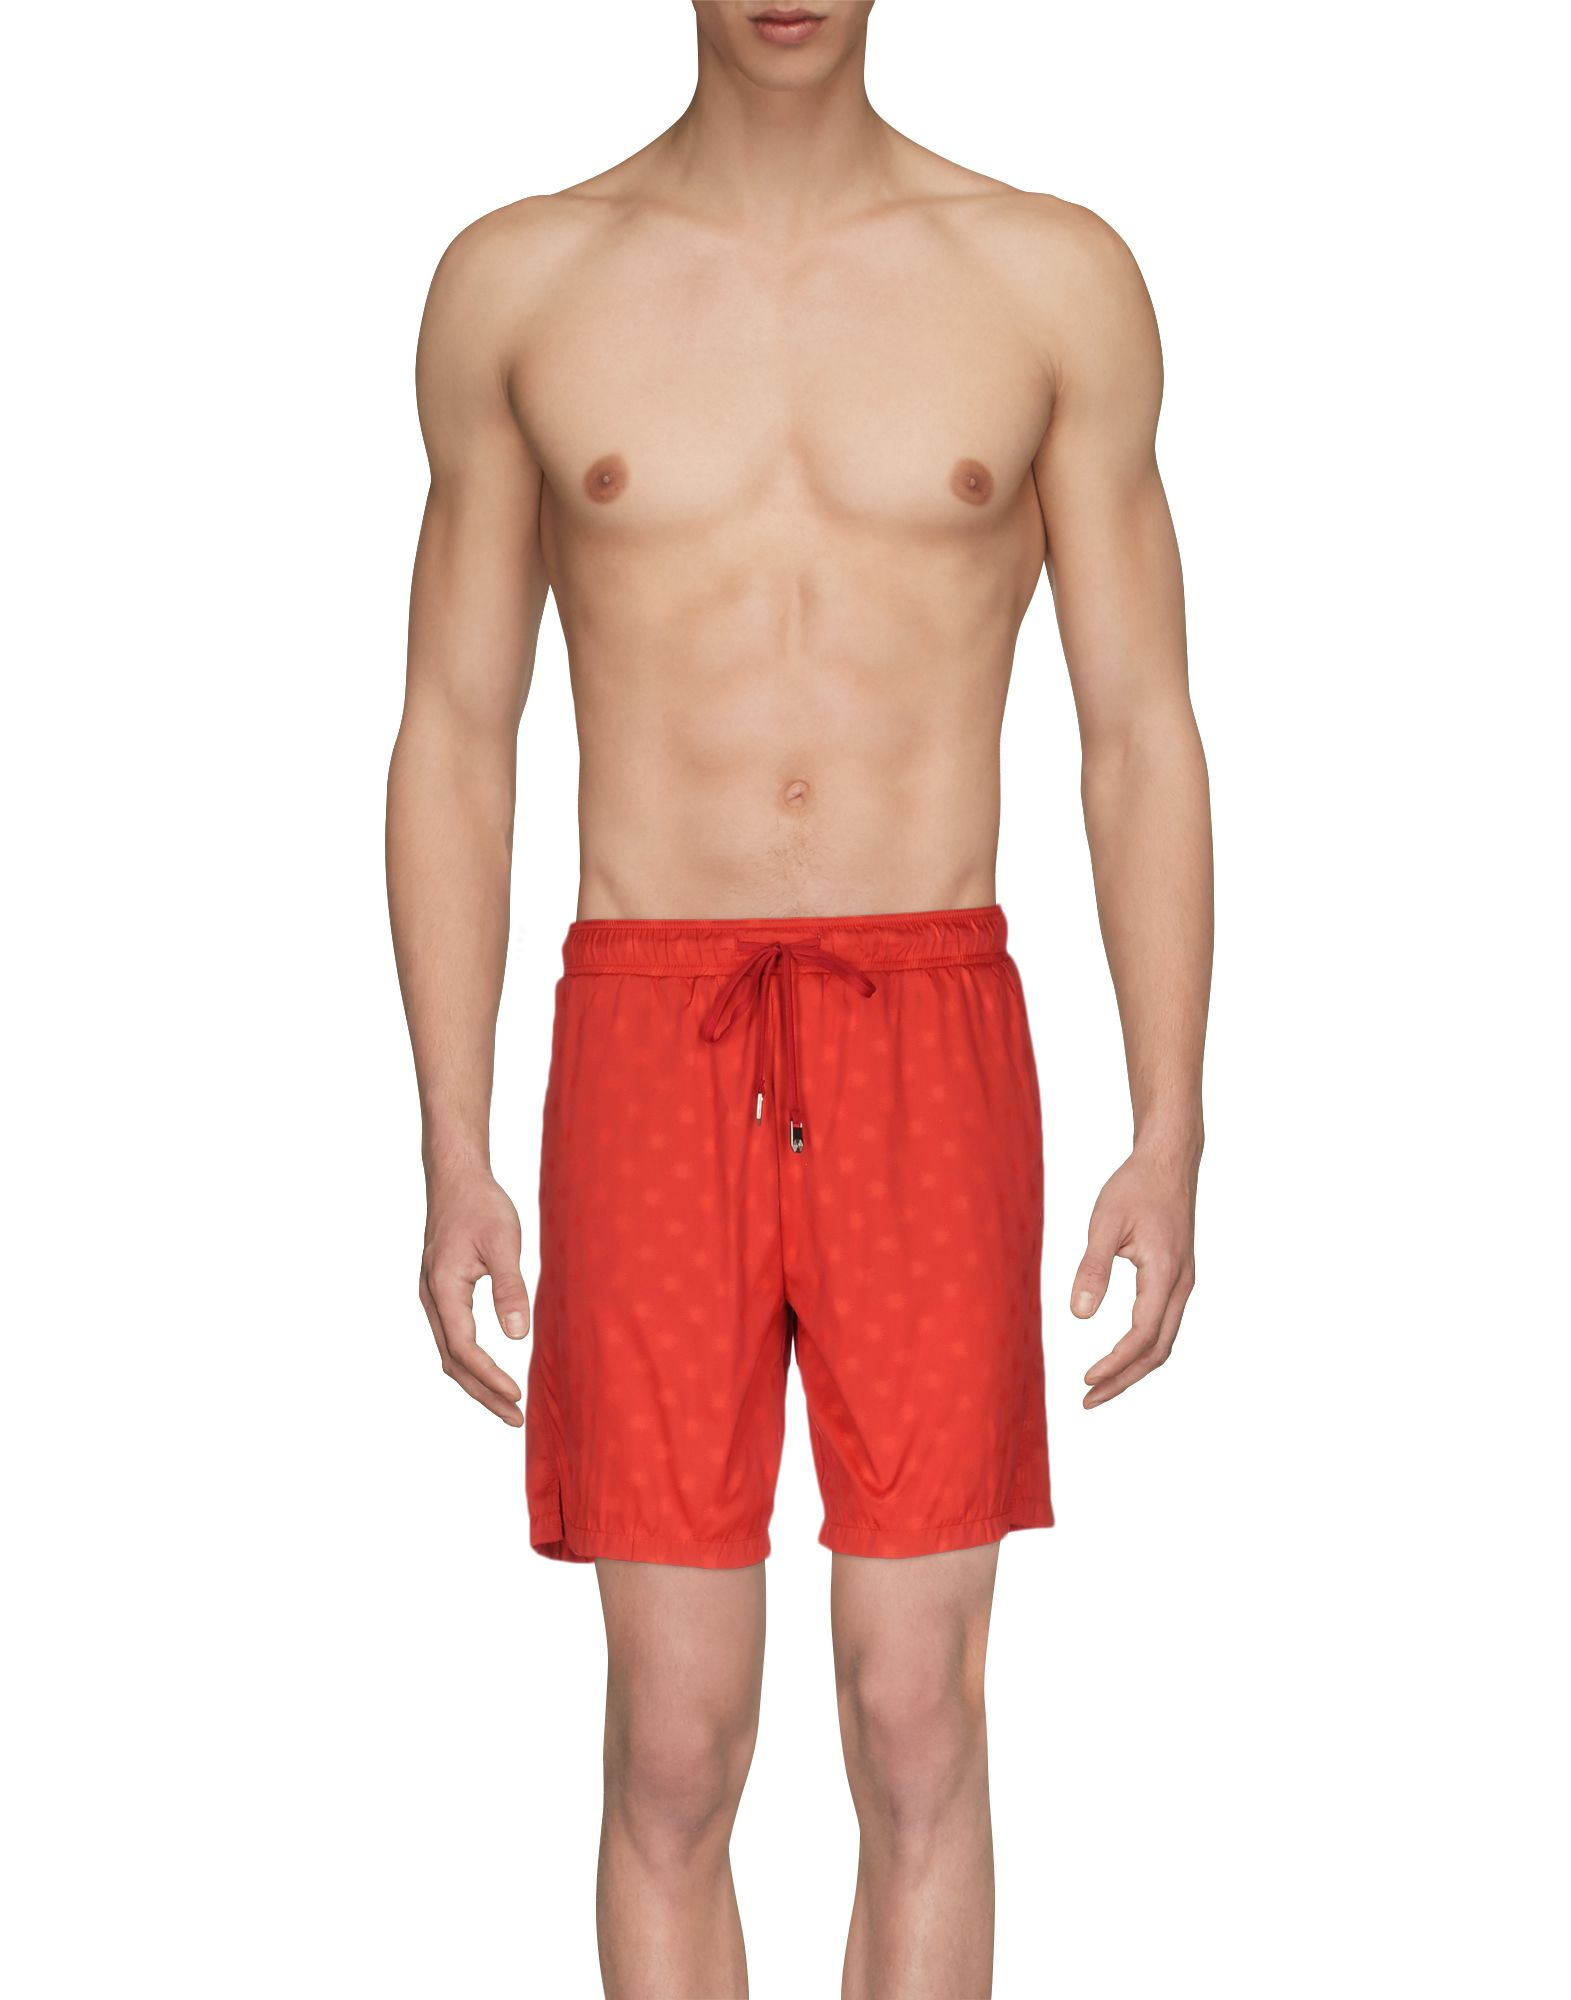 MAKE YOUR ODYSSEY Swim Shorts in Red